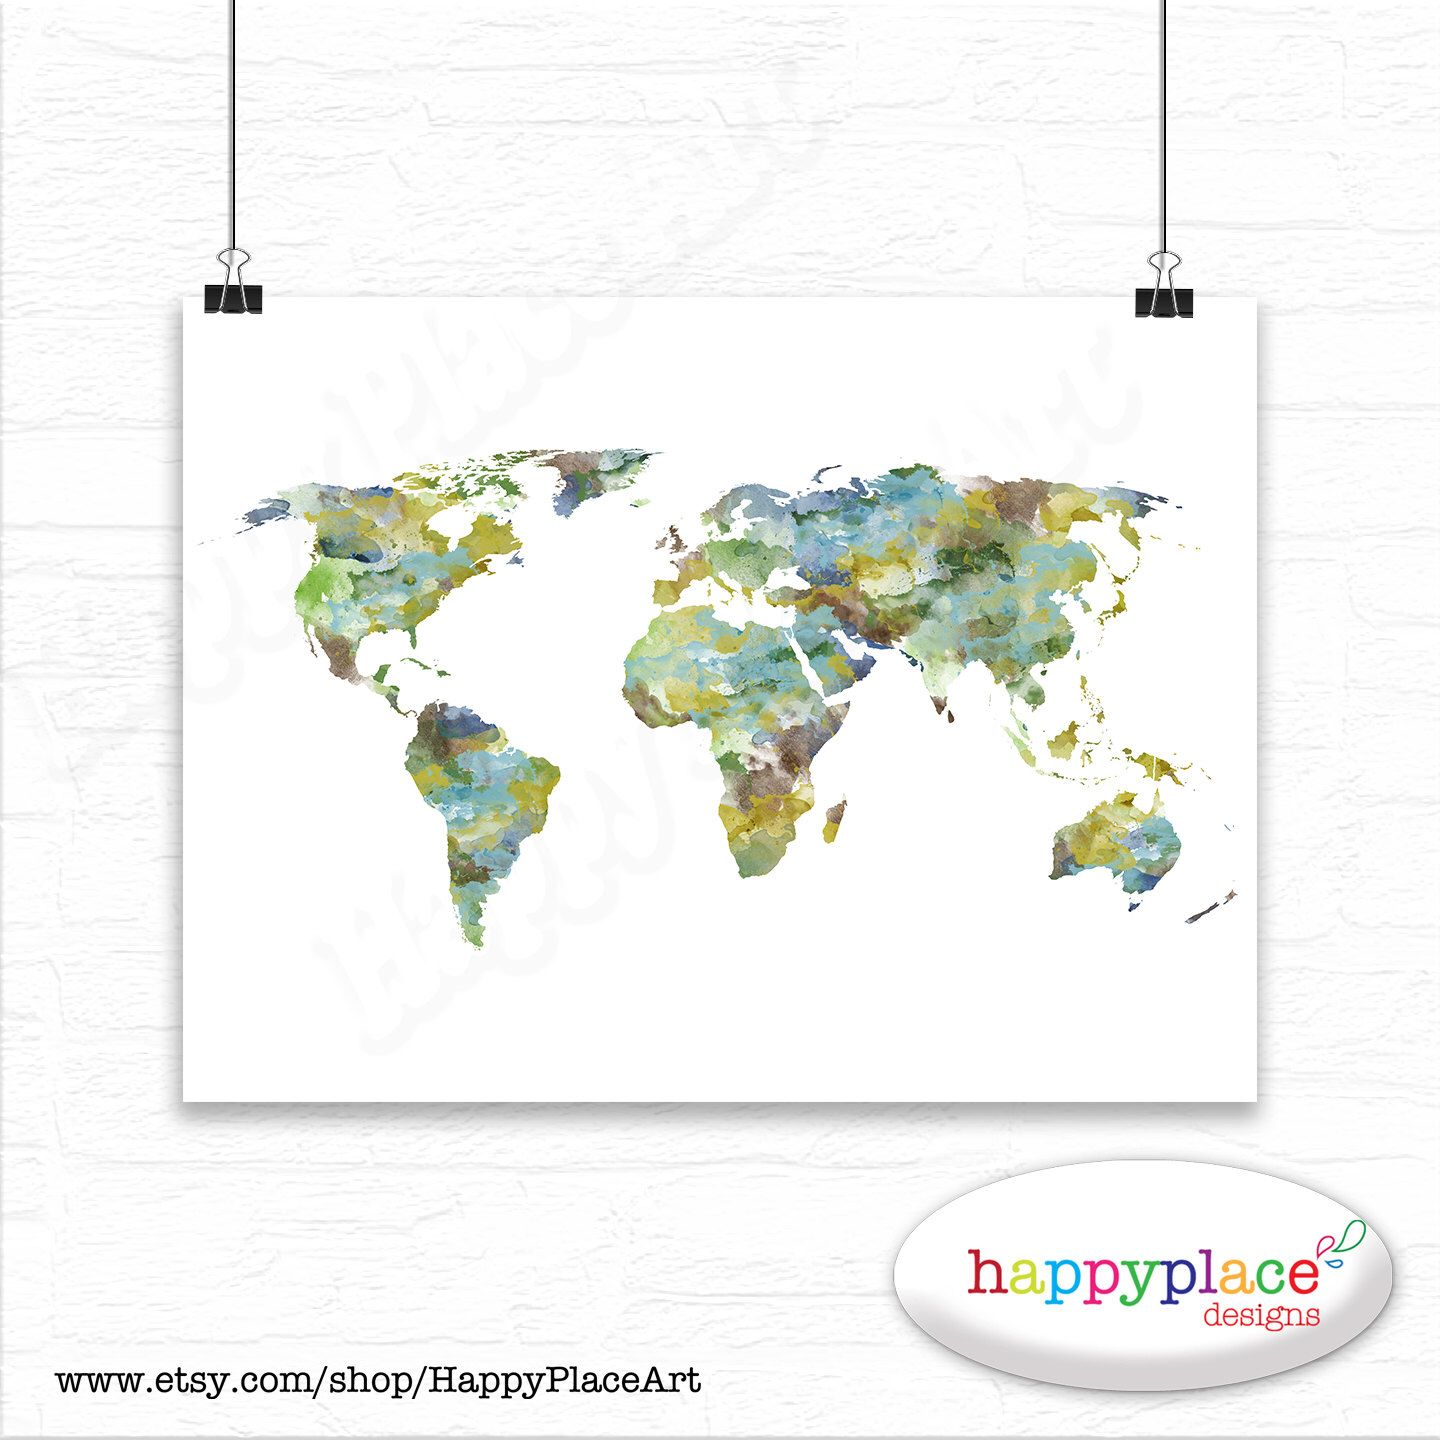 Large world map canvas print or printable personalise it with a large watercolor world map print or printable choice of colours text size gumiabroncs Gallery